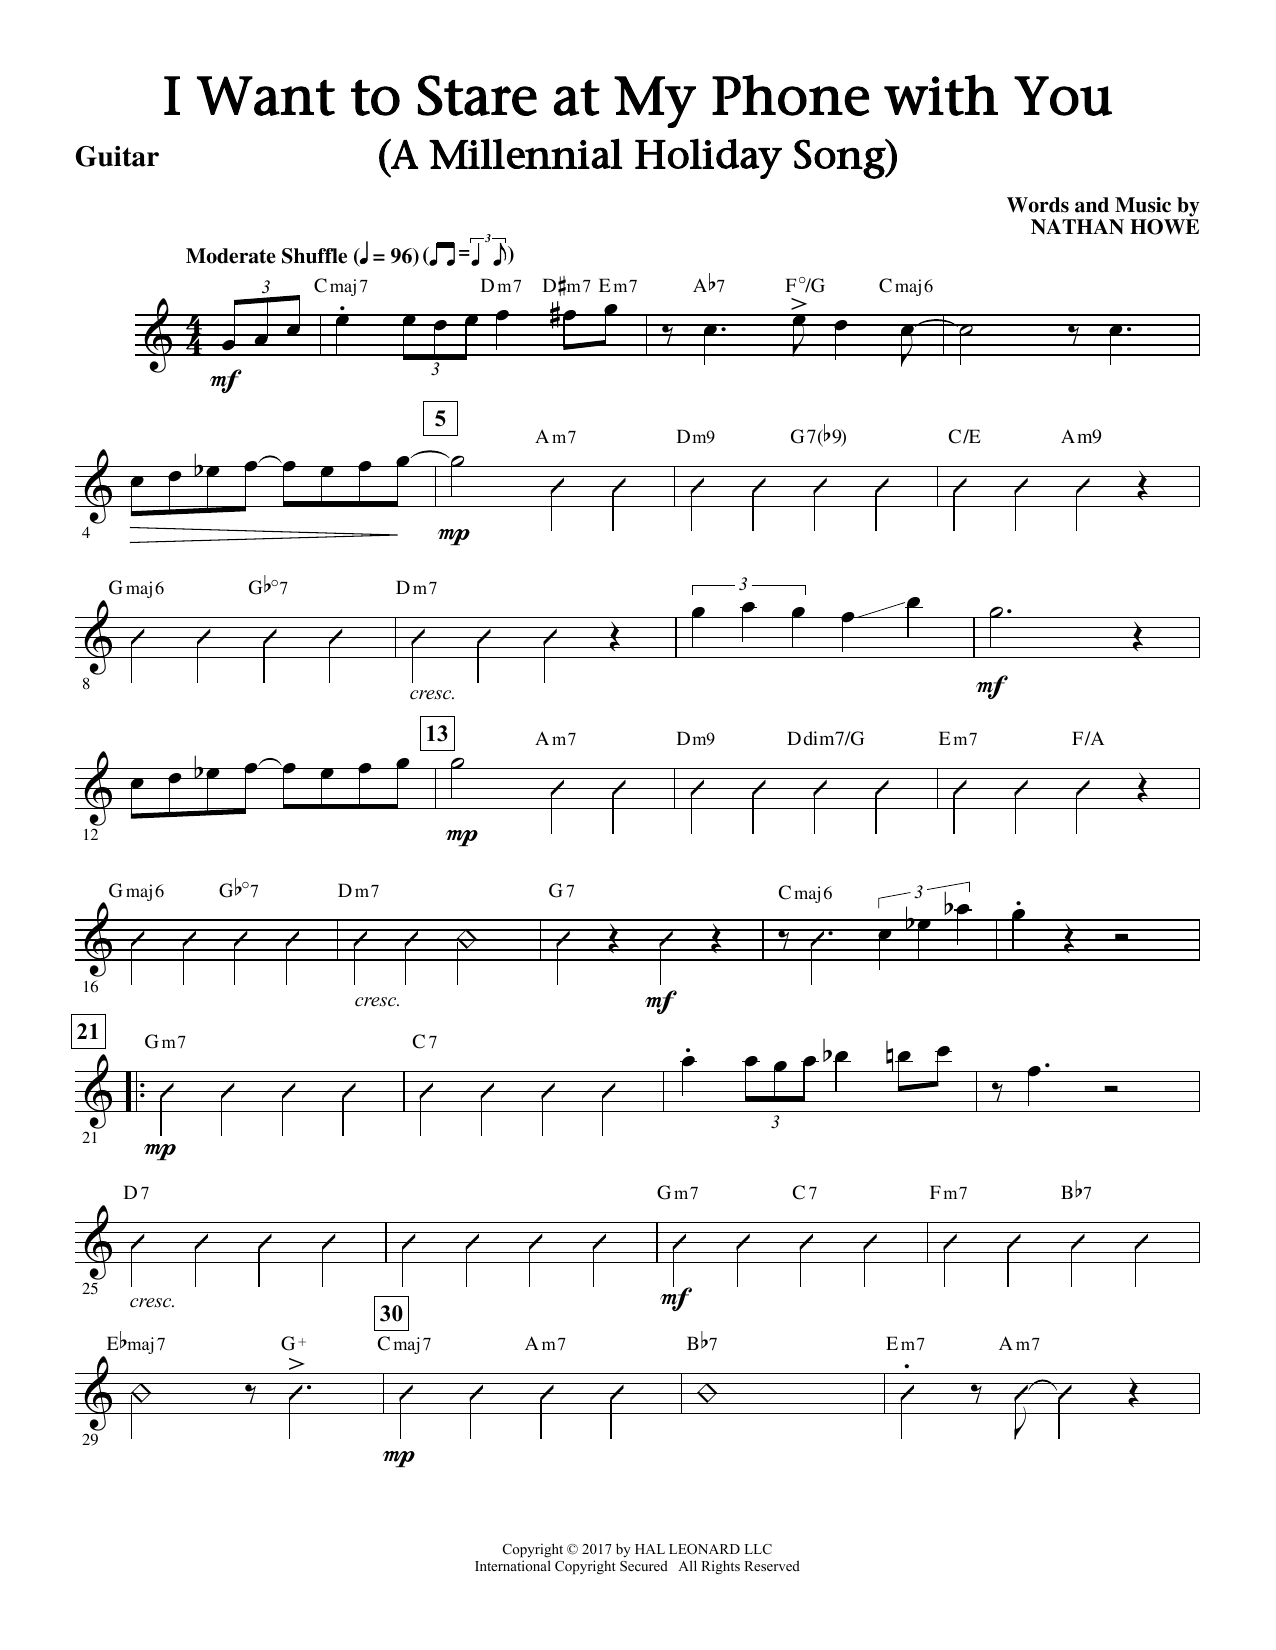 I Want To Stare At My Phone With You (a Touching Holiday Song) (complete set of parts) sheet music for orchestra/band by Nathan Howe. Score Image Preview.